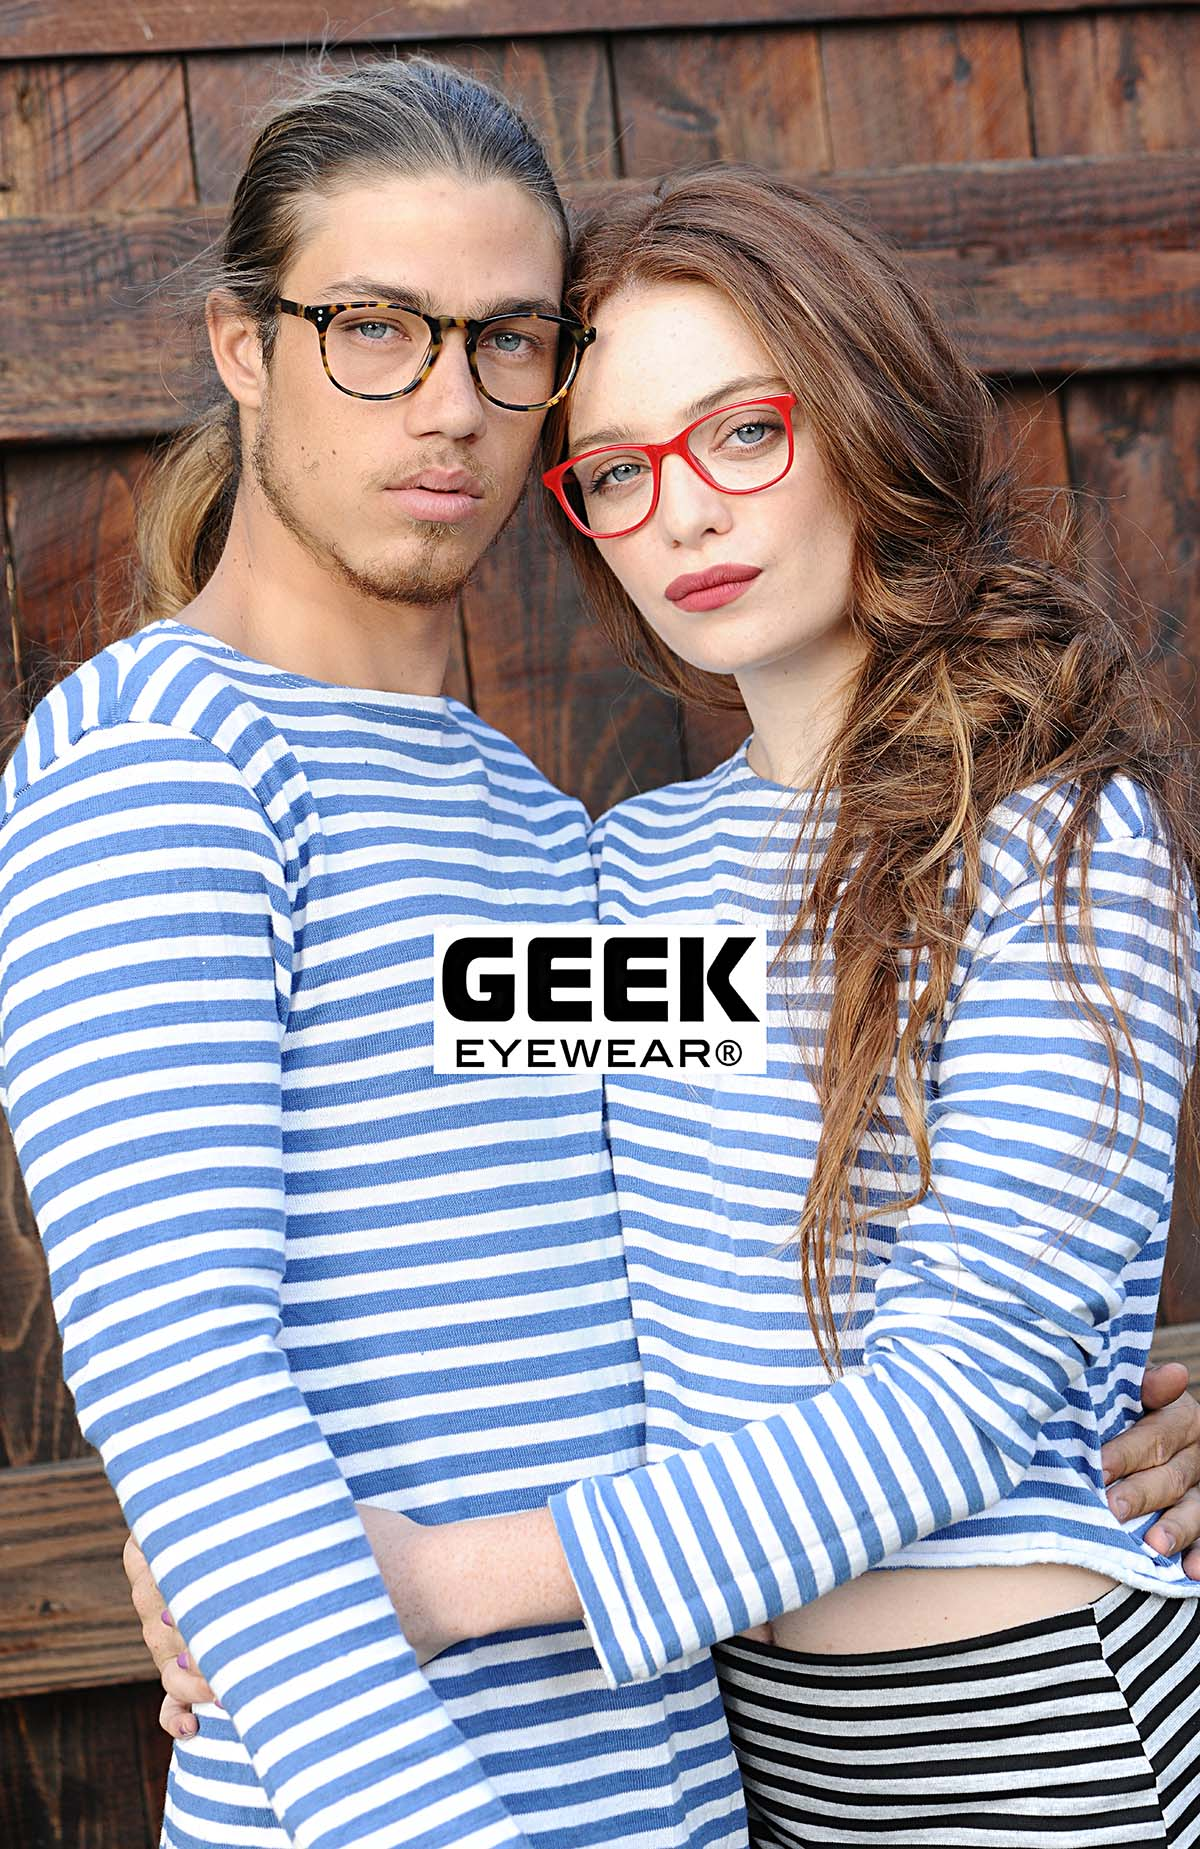 geek-eyewear-2017-styles-wednesday-and-thursday